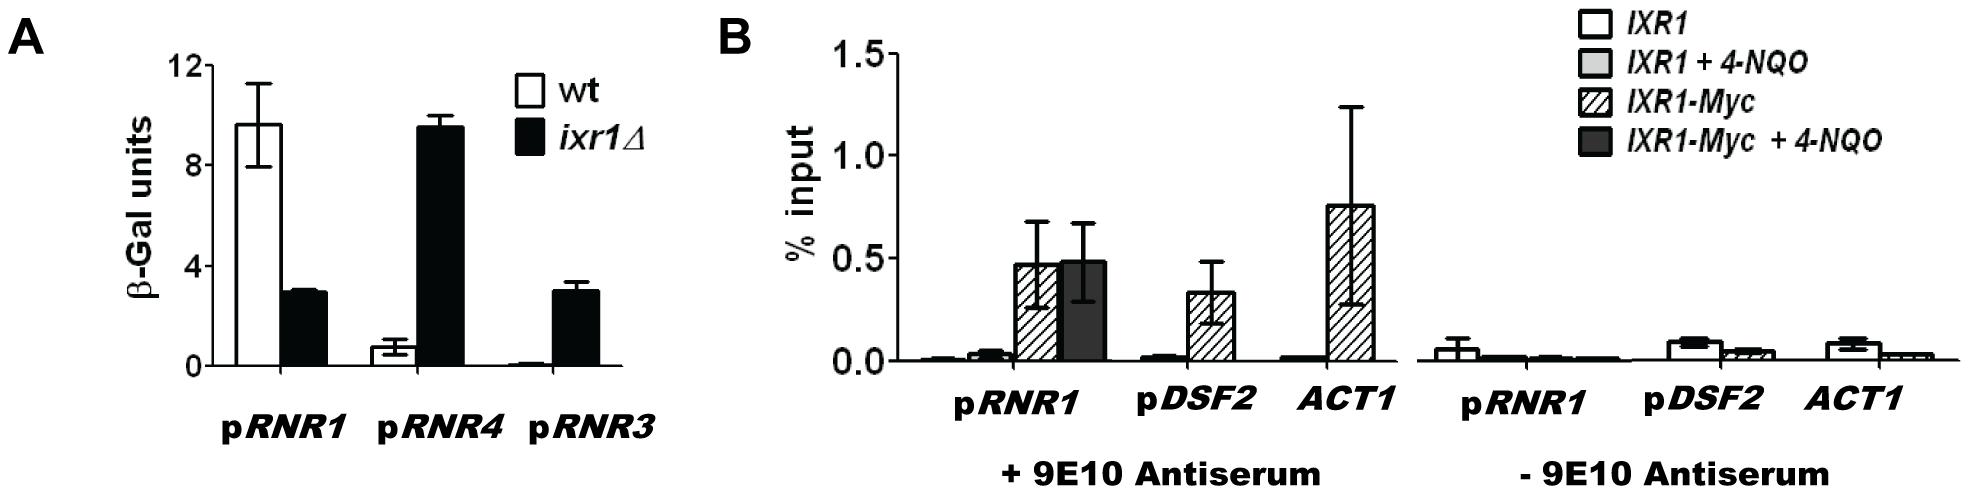 Ixr1 regulates <i>RNR1</i> promoter activity.